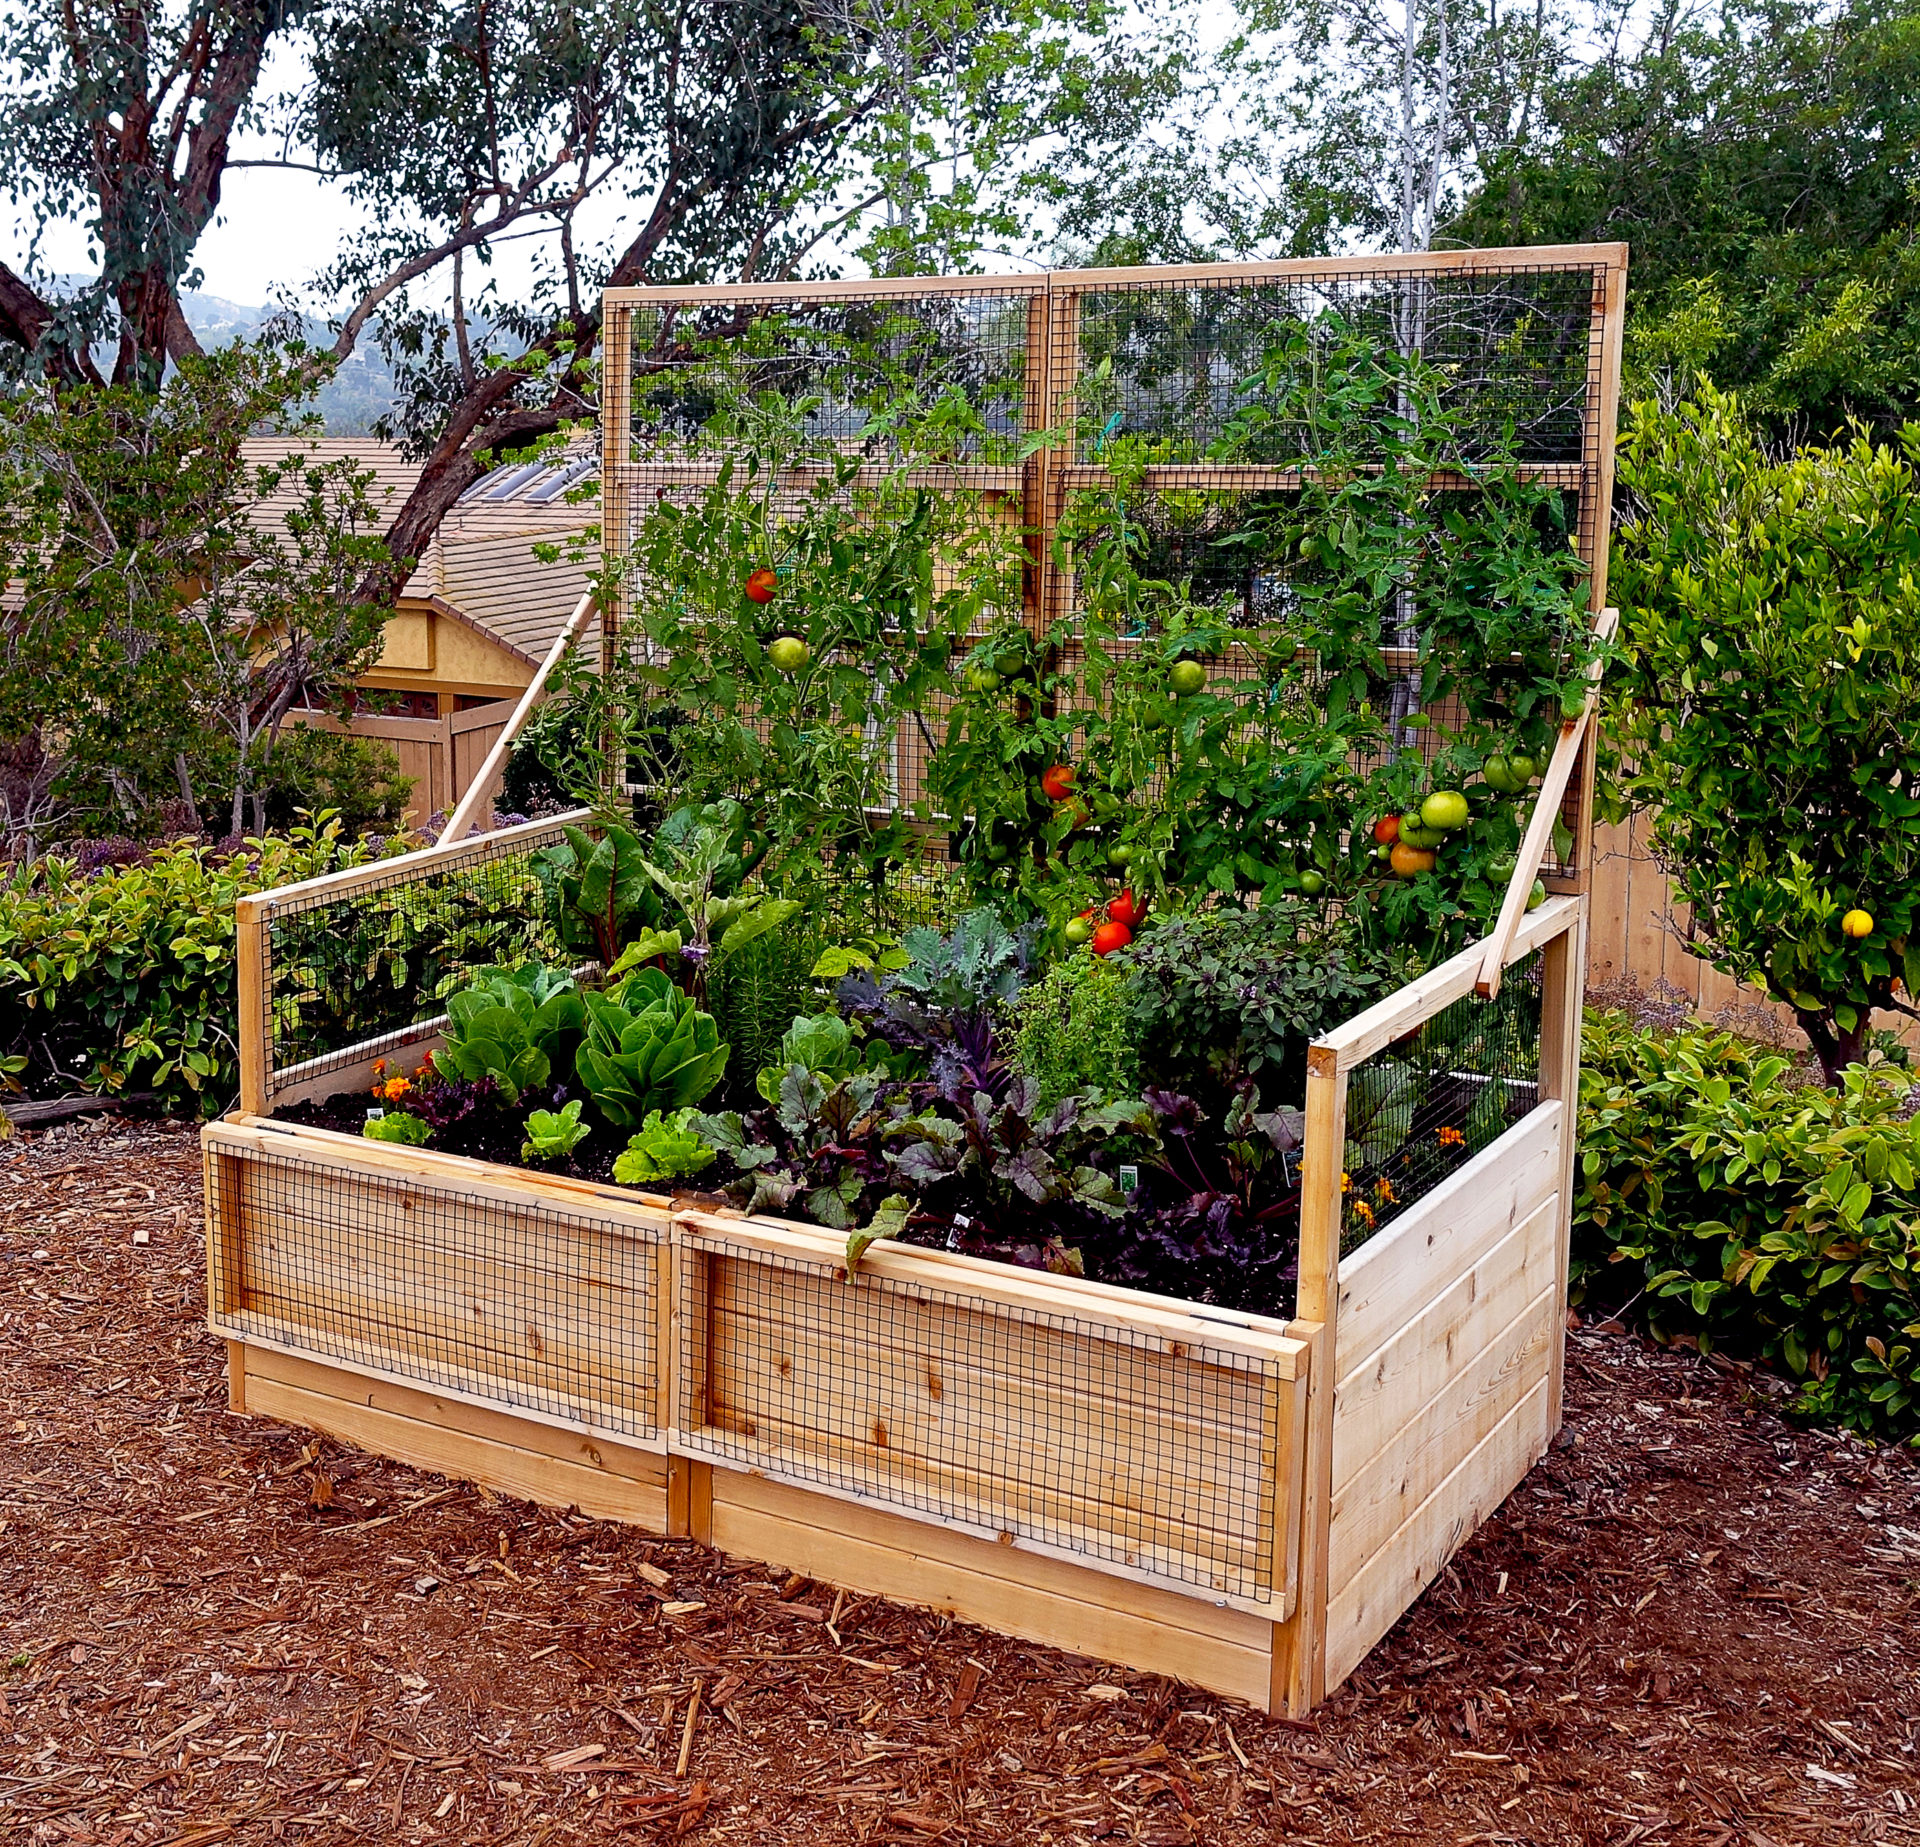 Backyard Garden Ideas What To Plant In Your Backyard Garden